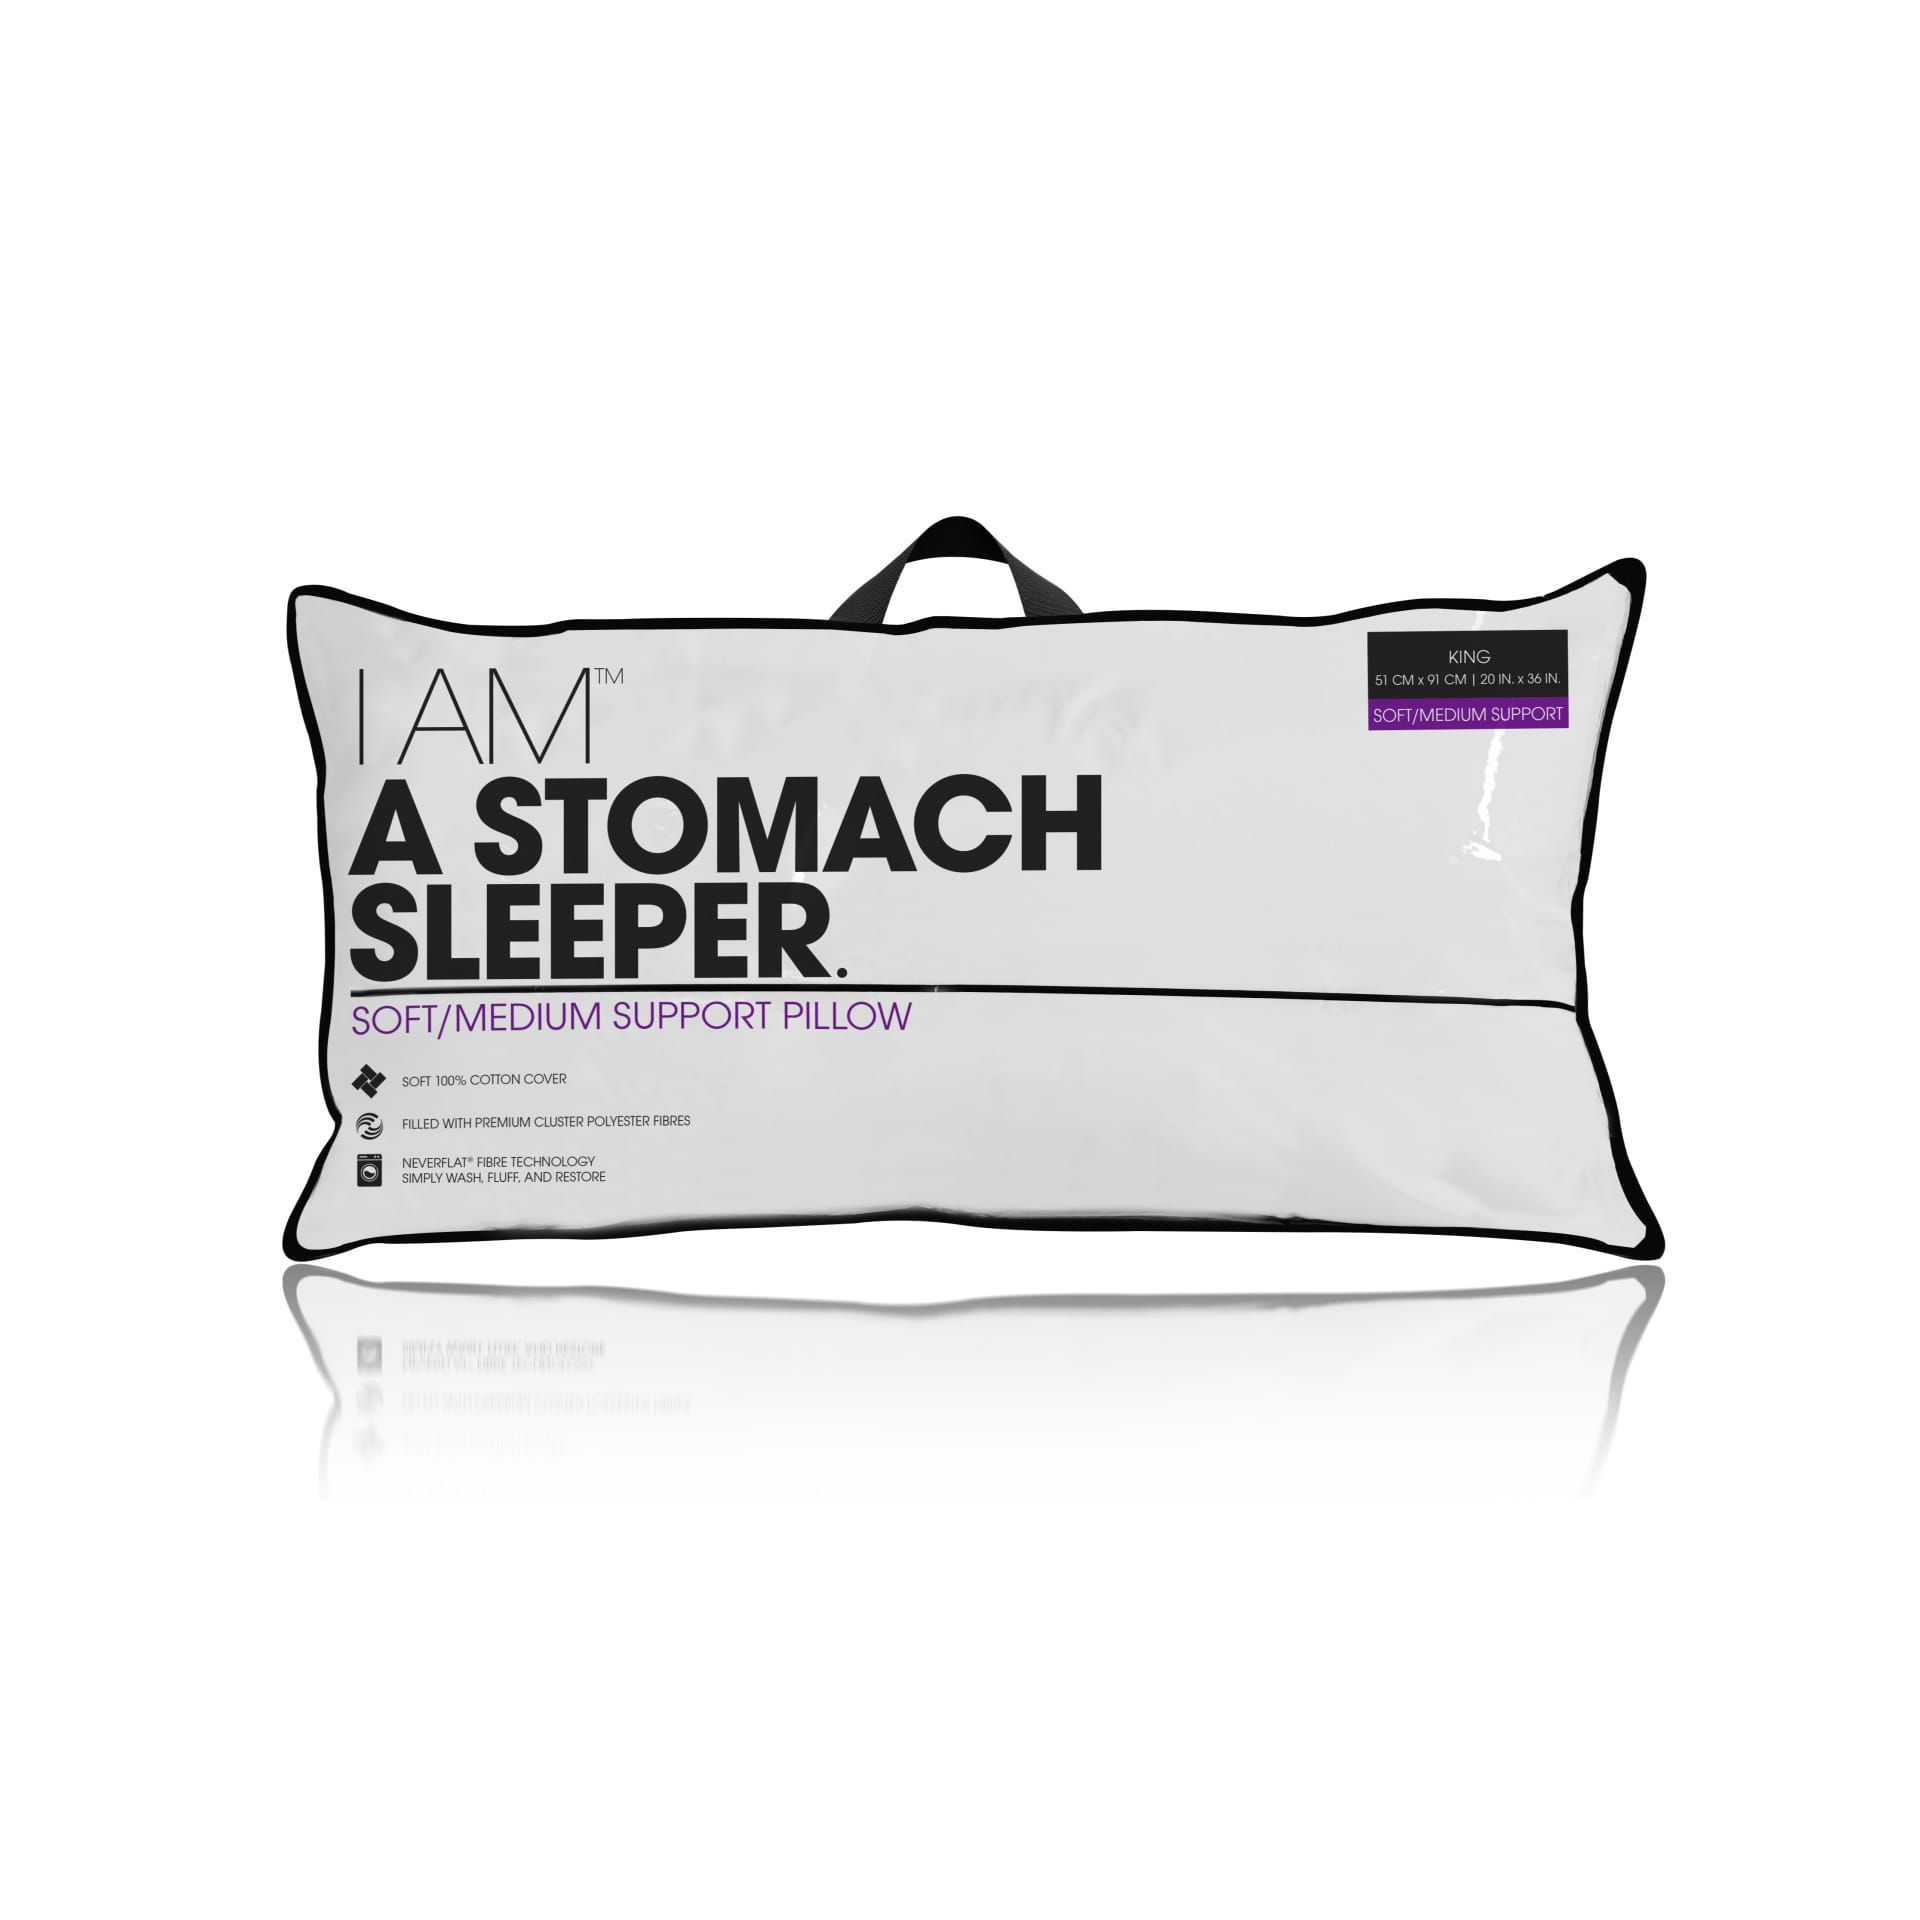 i am a stomach sleeper pillow jumbo white products